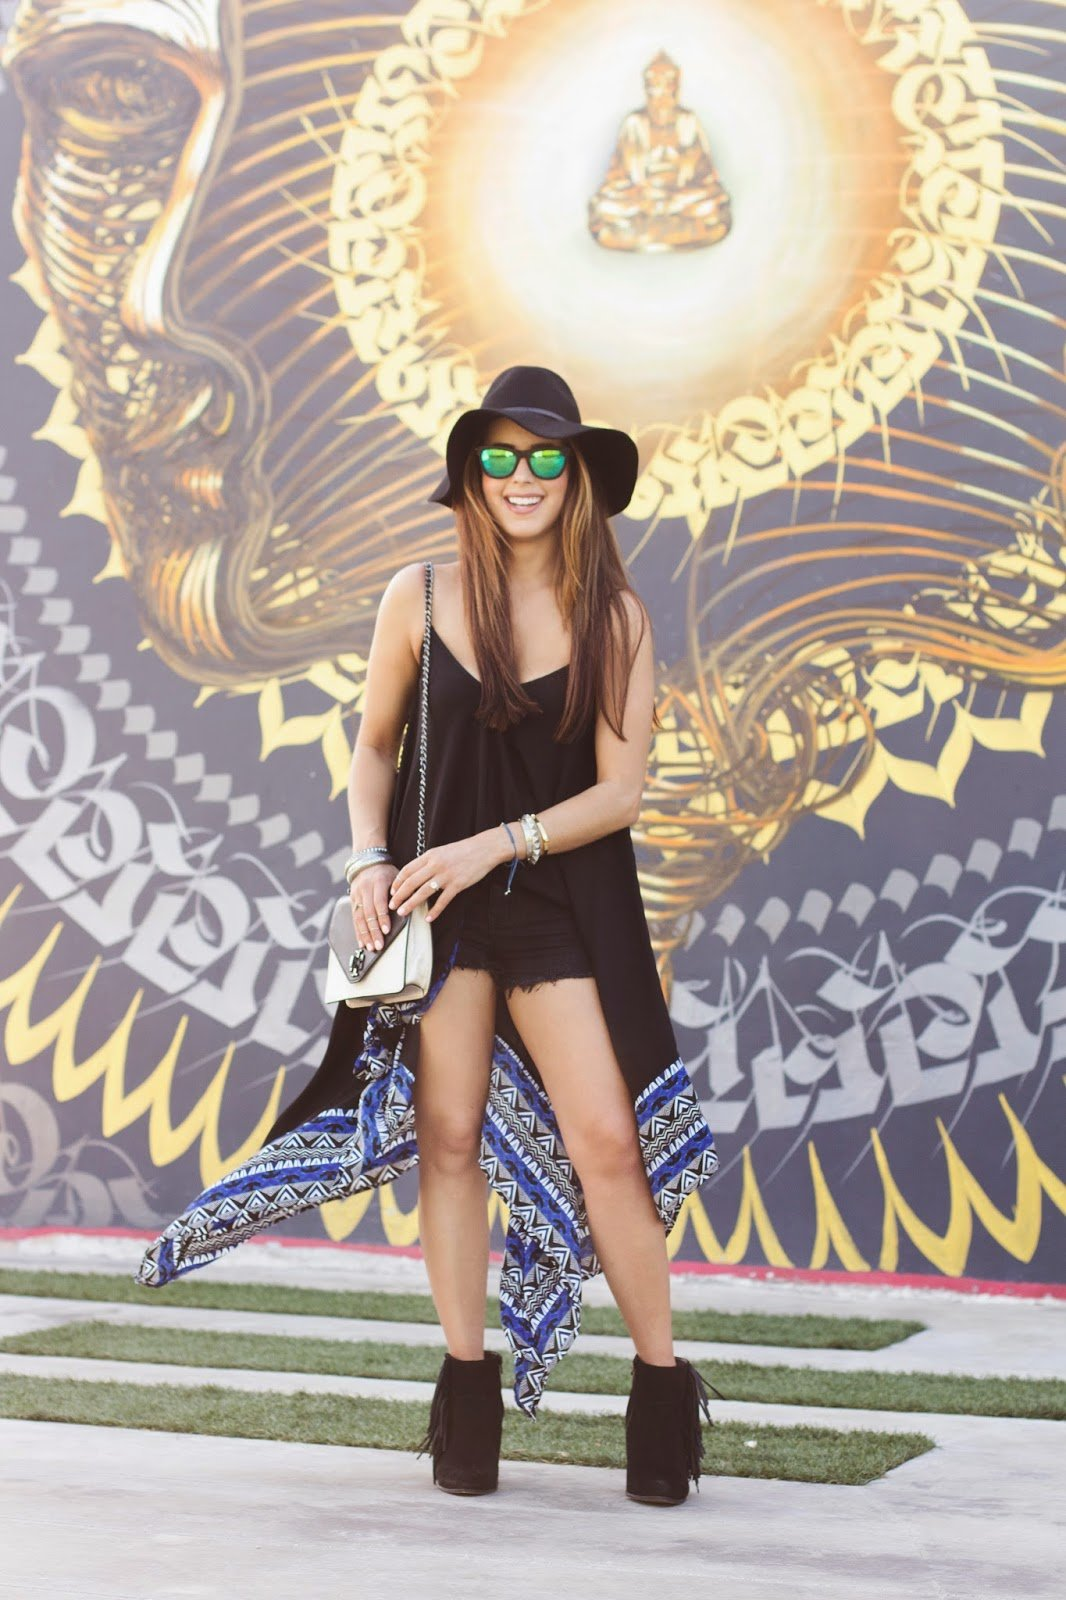 Festival Style in the City